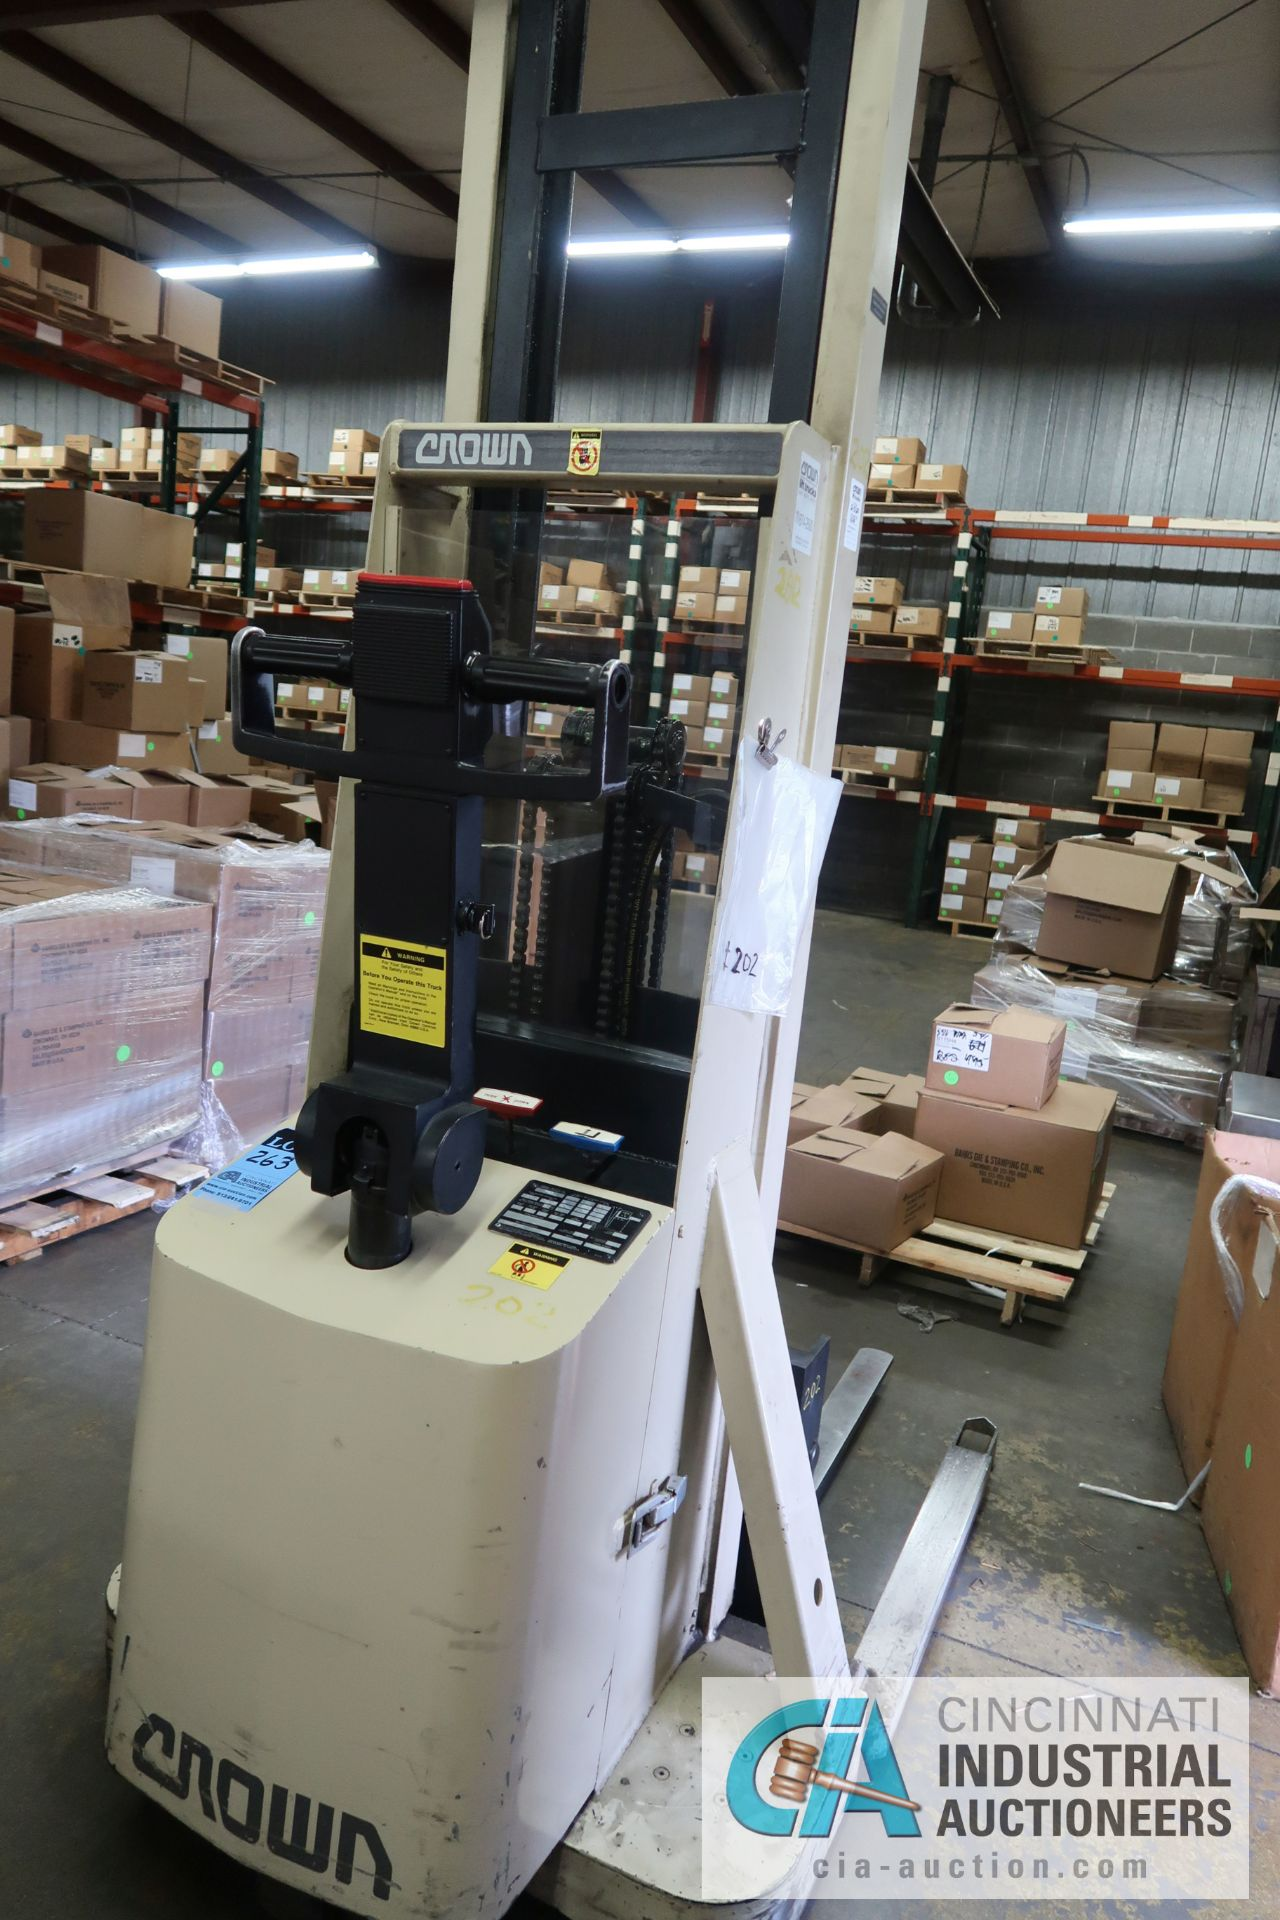 2,000 LB. CAPACITY CROWN MODEL 20MT ELECTRIC WALK BEHIND ELECTRIC STACKER; S/N 1A132307, 24 VOLT, - Image 4 of 5